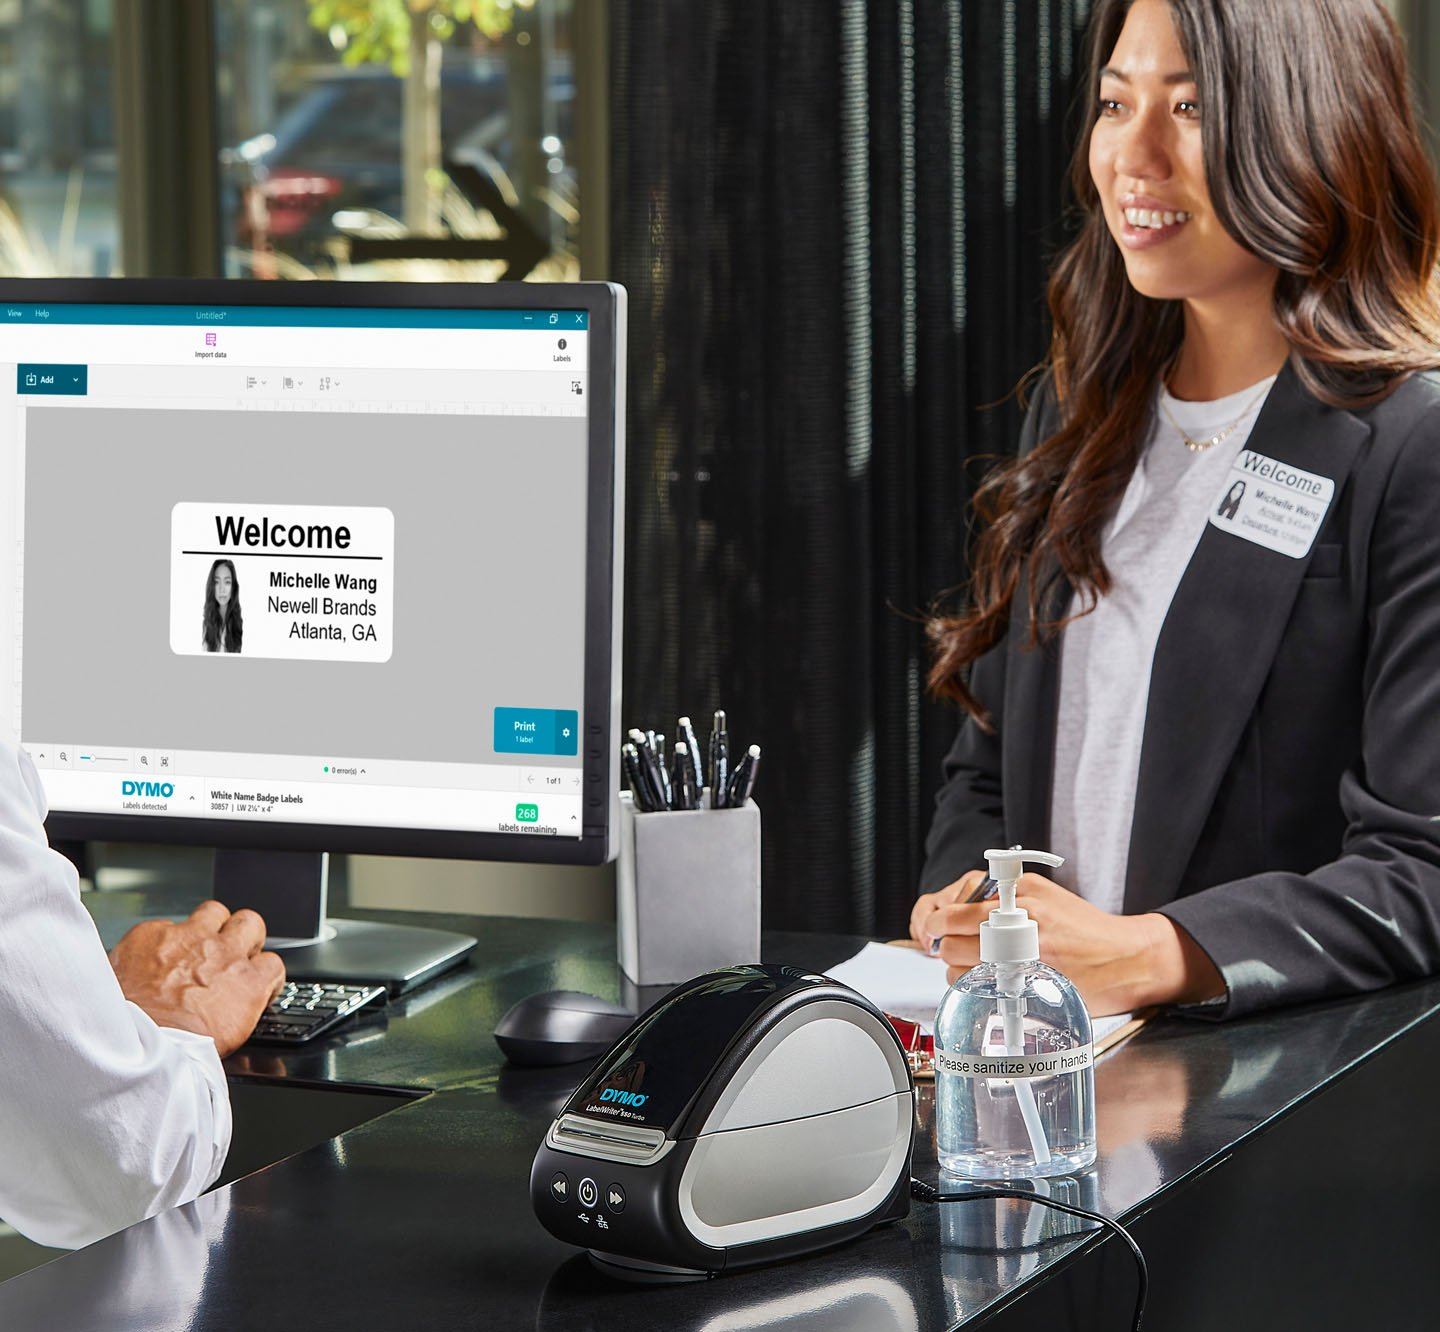 A person using a computer to create and print a welcome label for a visitor.